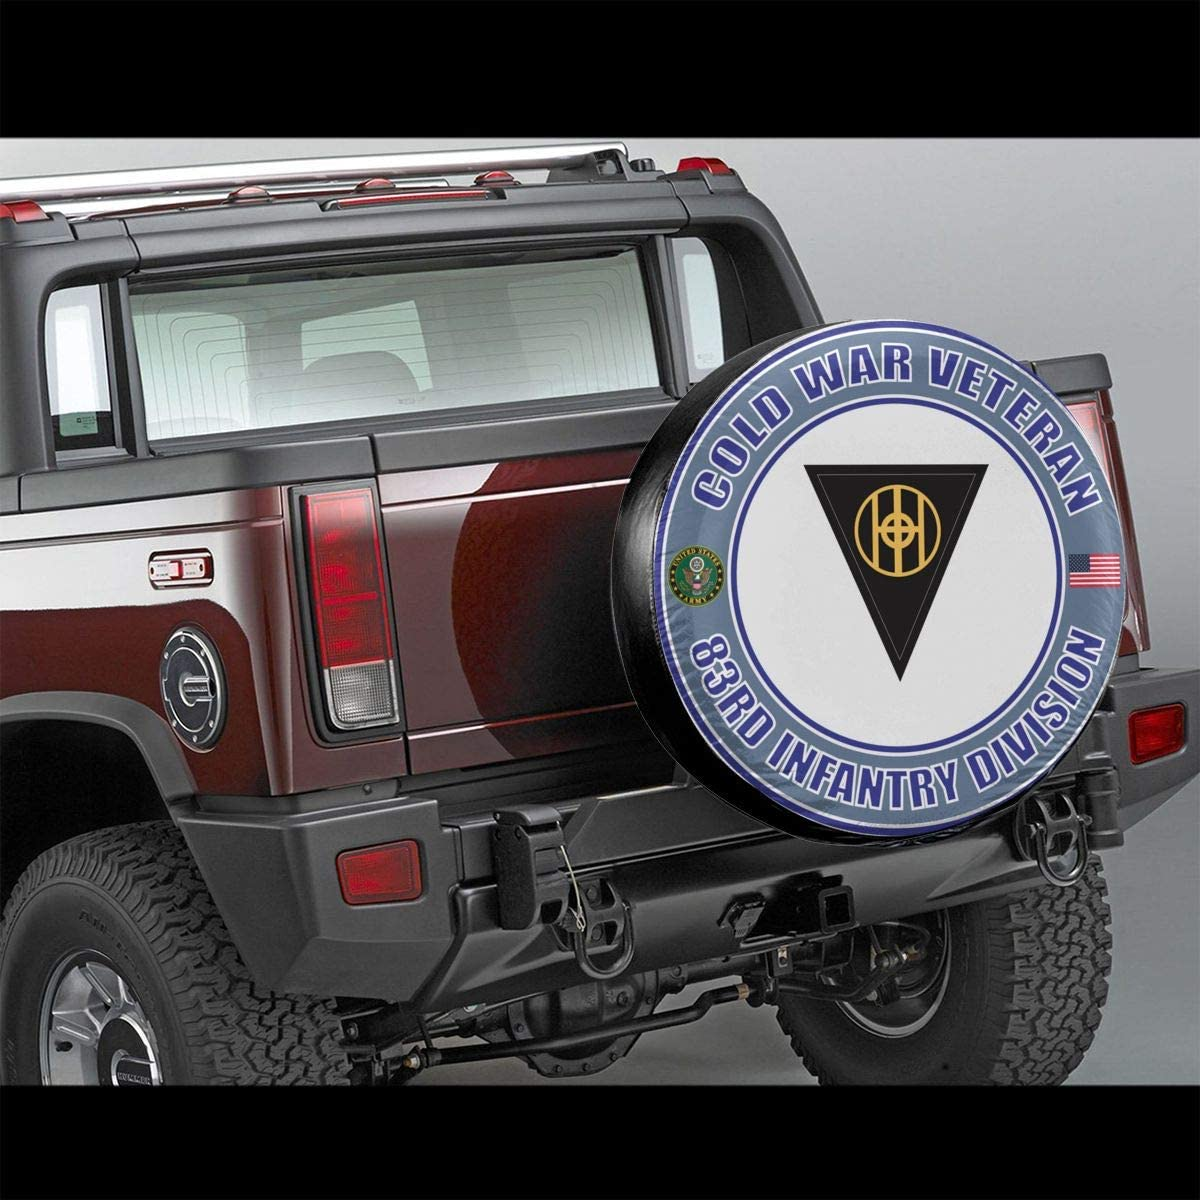 Bosb-00 U.S Army Veteran 25th Infantry Division Spare Tire Type Cover Wheel Fit Truck Jeep RV Ect.